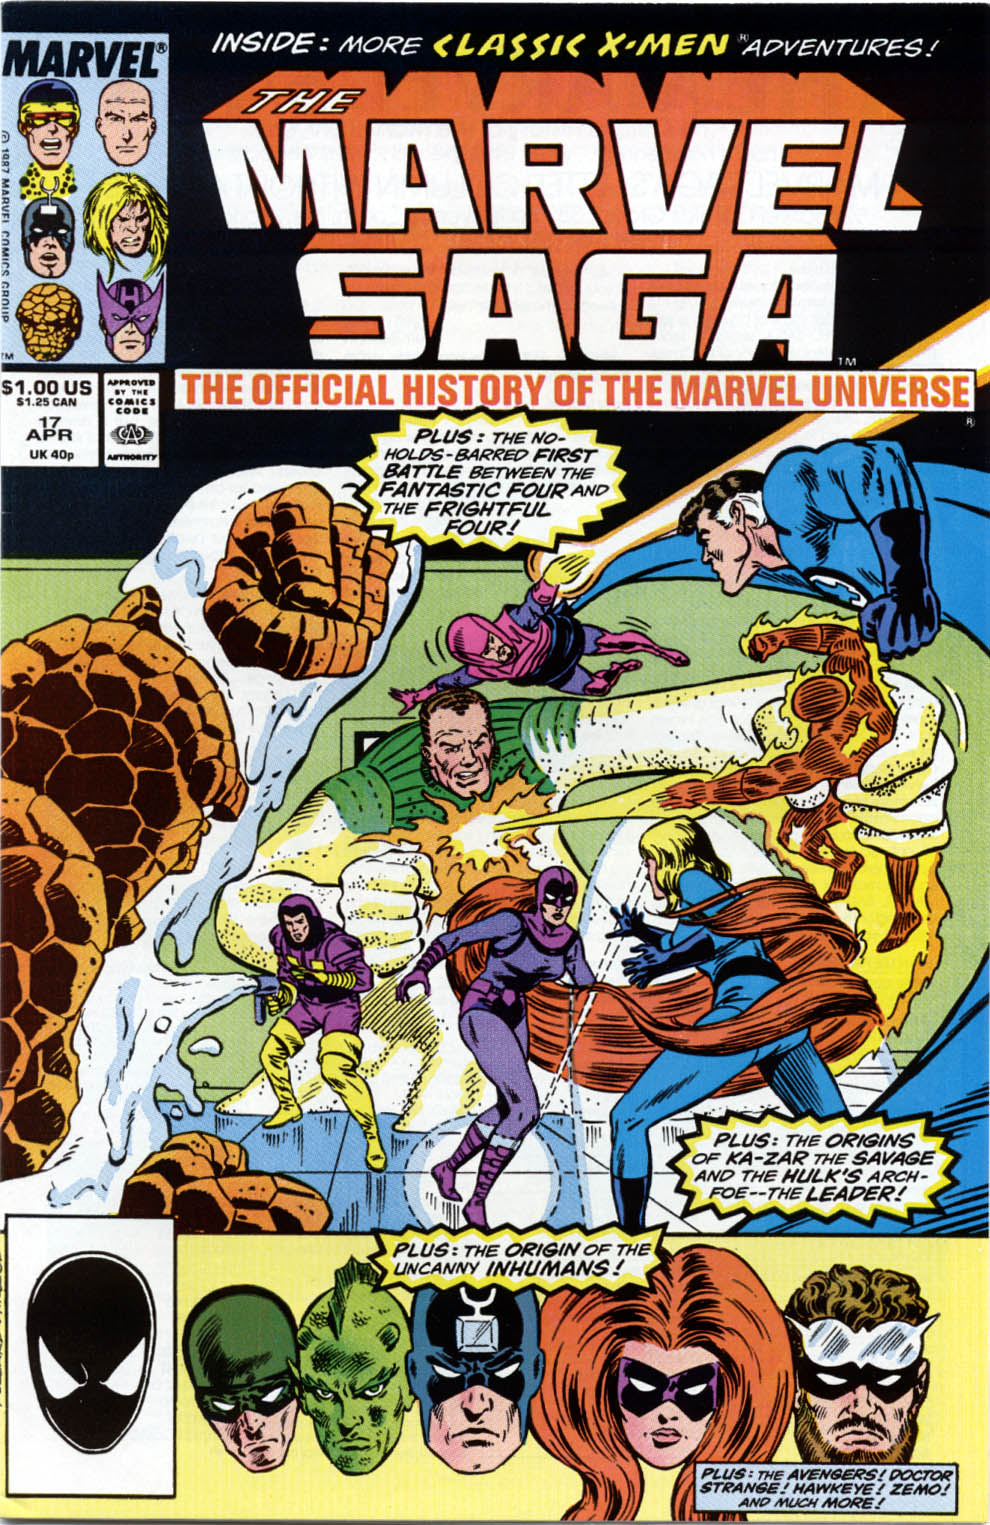 Marvel Saga: The Official History of the Marvel Universe issue 17 - Page 1